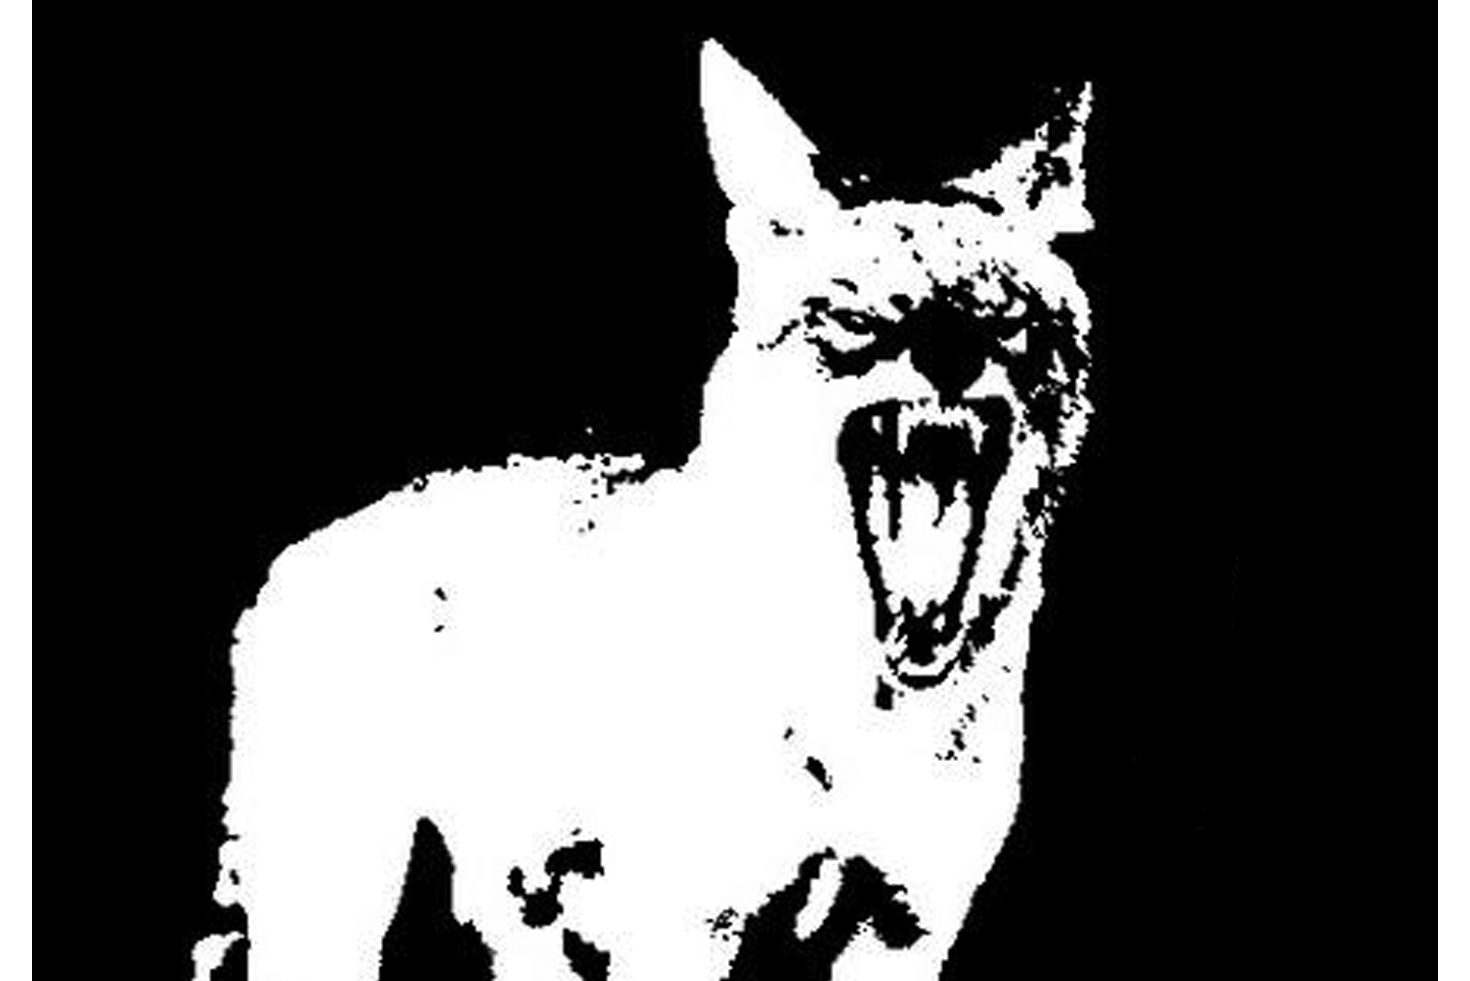 The Radio Coyote logo, a black and white image of a coyote with its mouth open, howling.